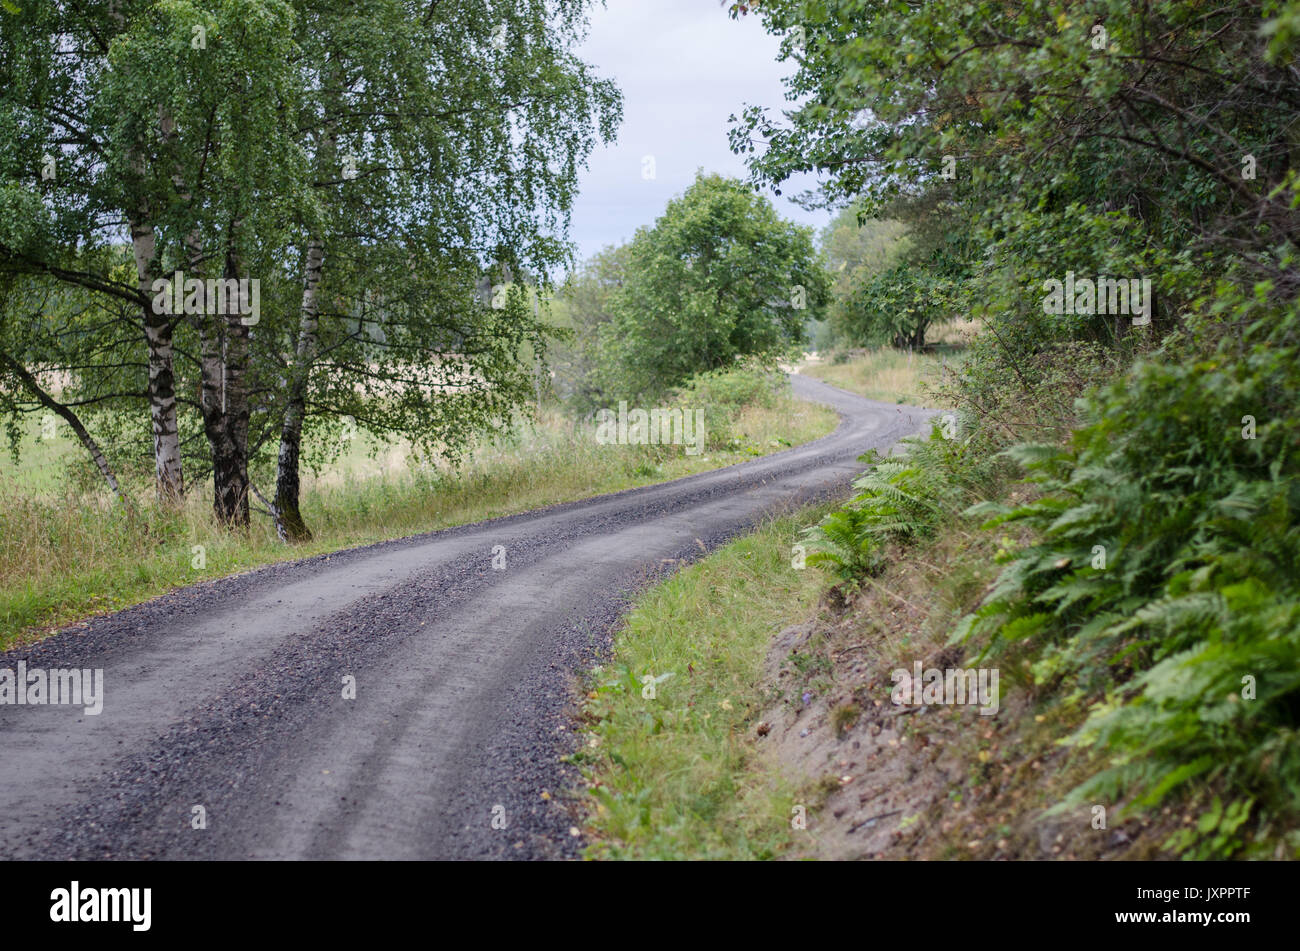 Long Winding Country Dirt Road Stock Photos & Long Winding ...